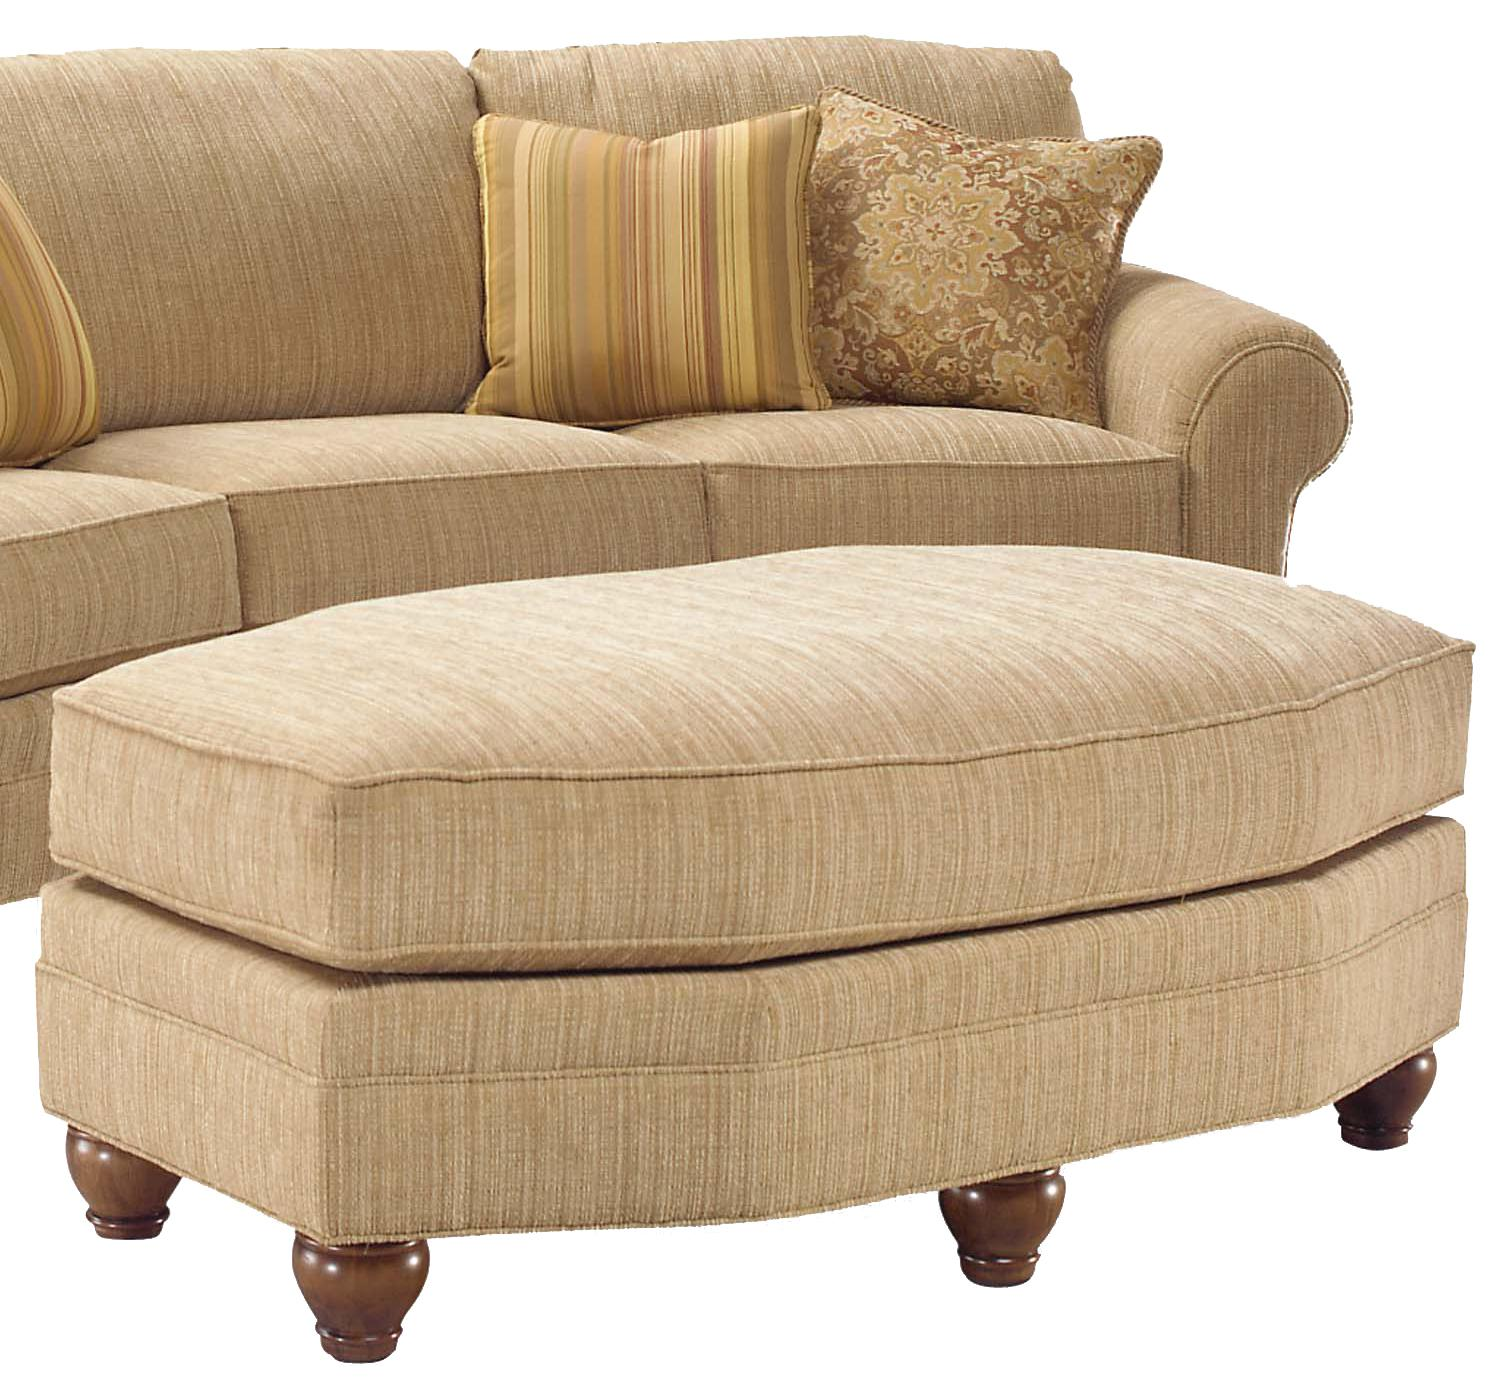 3768 Oval Ottoman by Fairfield at Lindy's Furniture Company